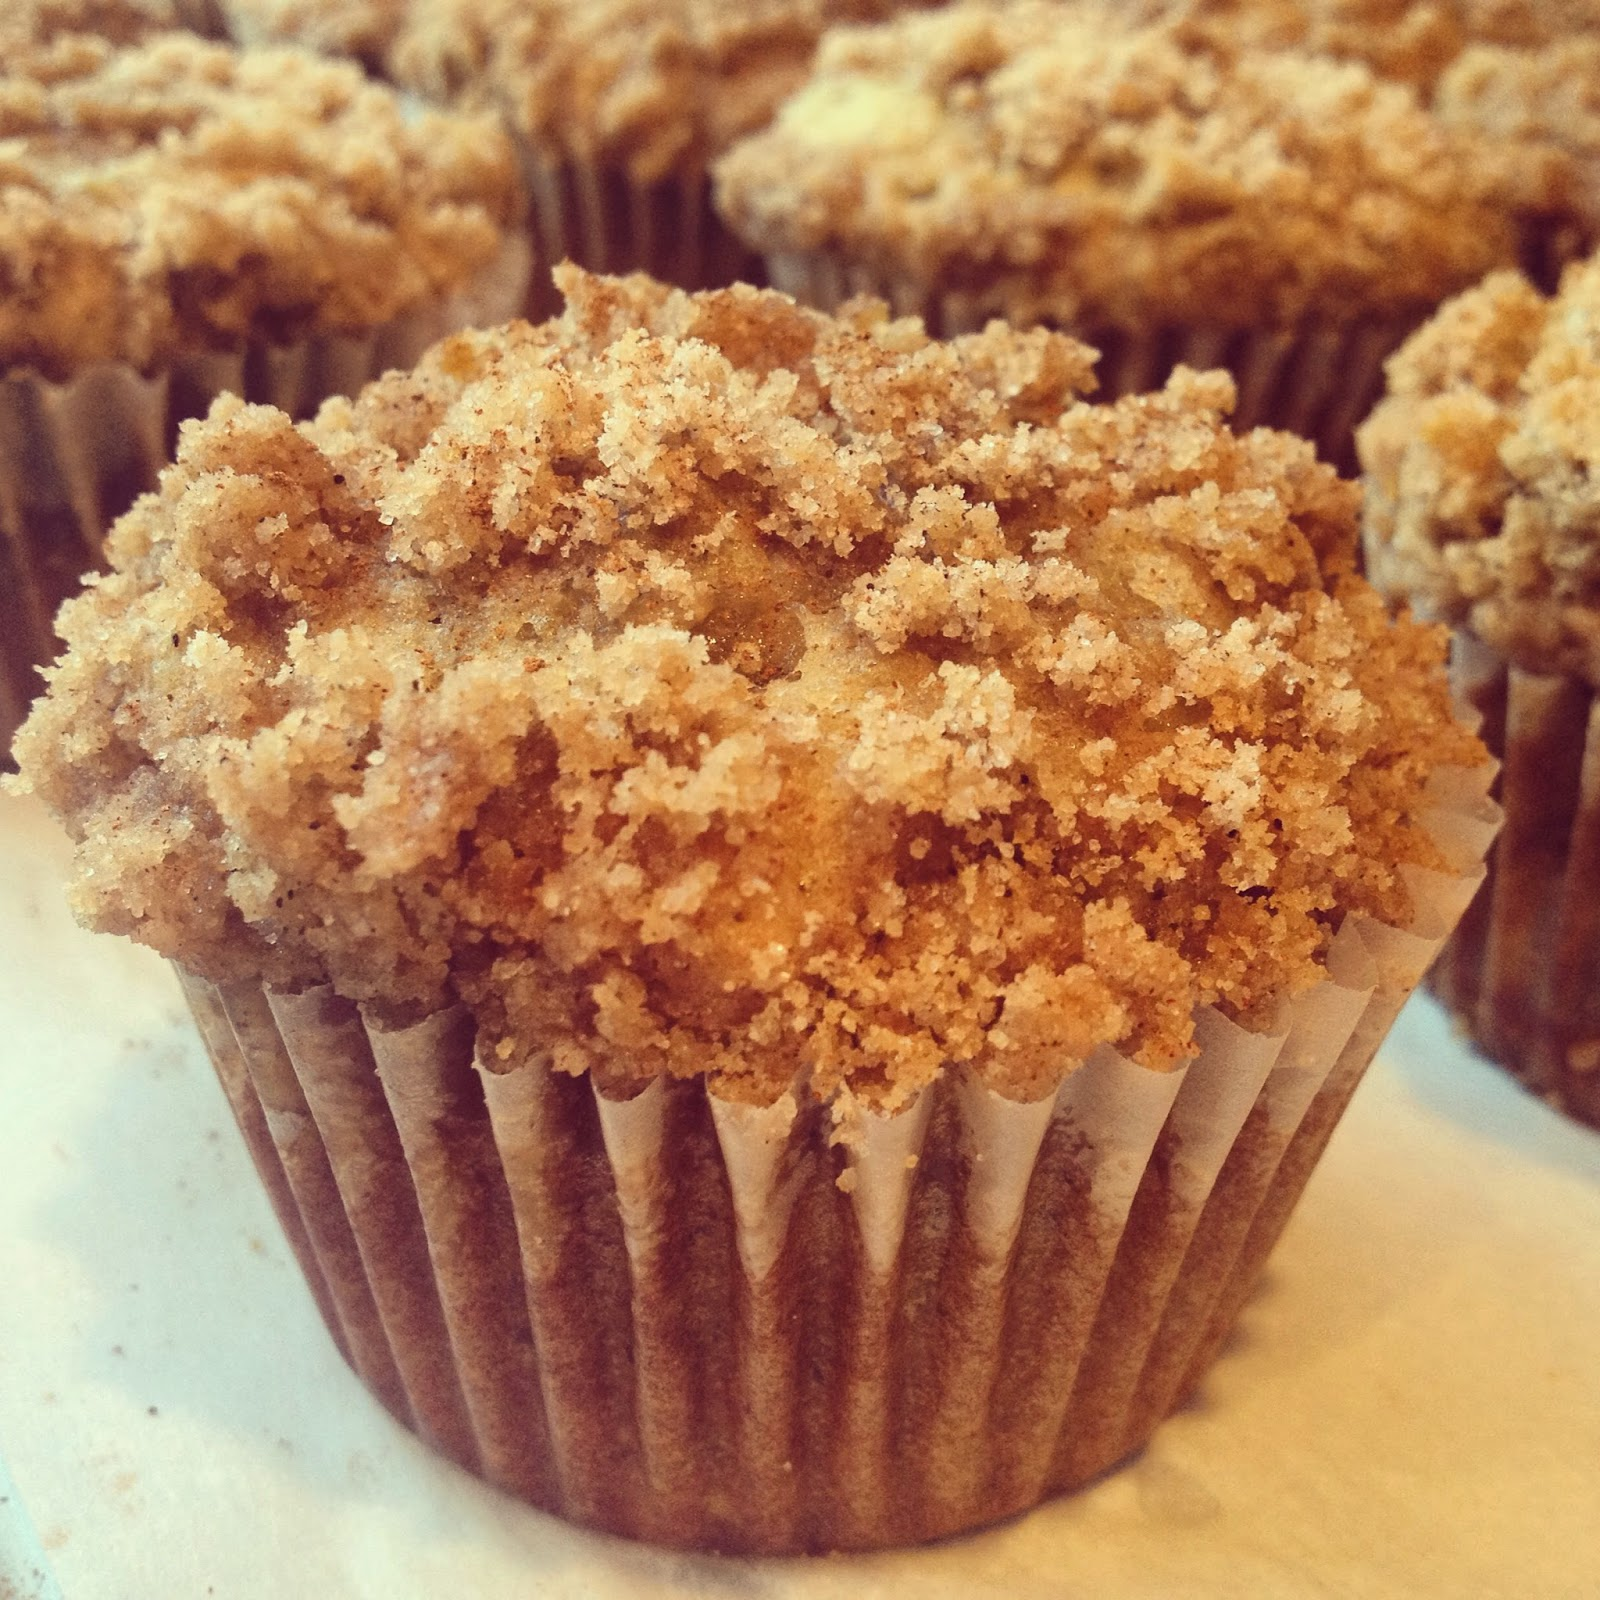 ... and baked goods: banana walnut muffins with cinnamon crumb topping